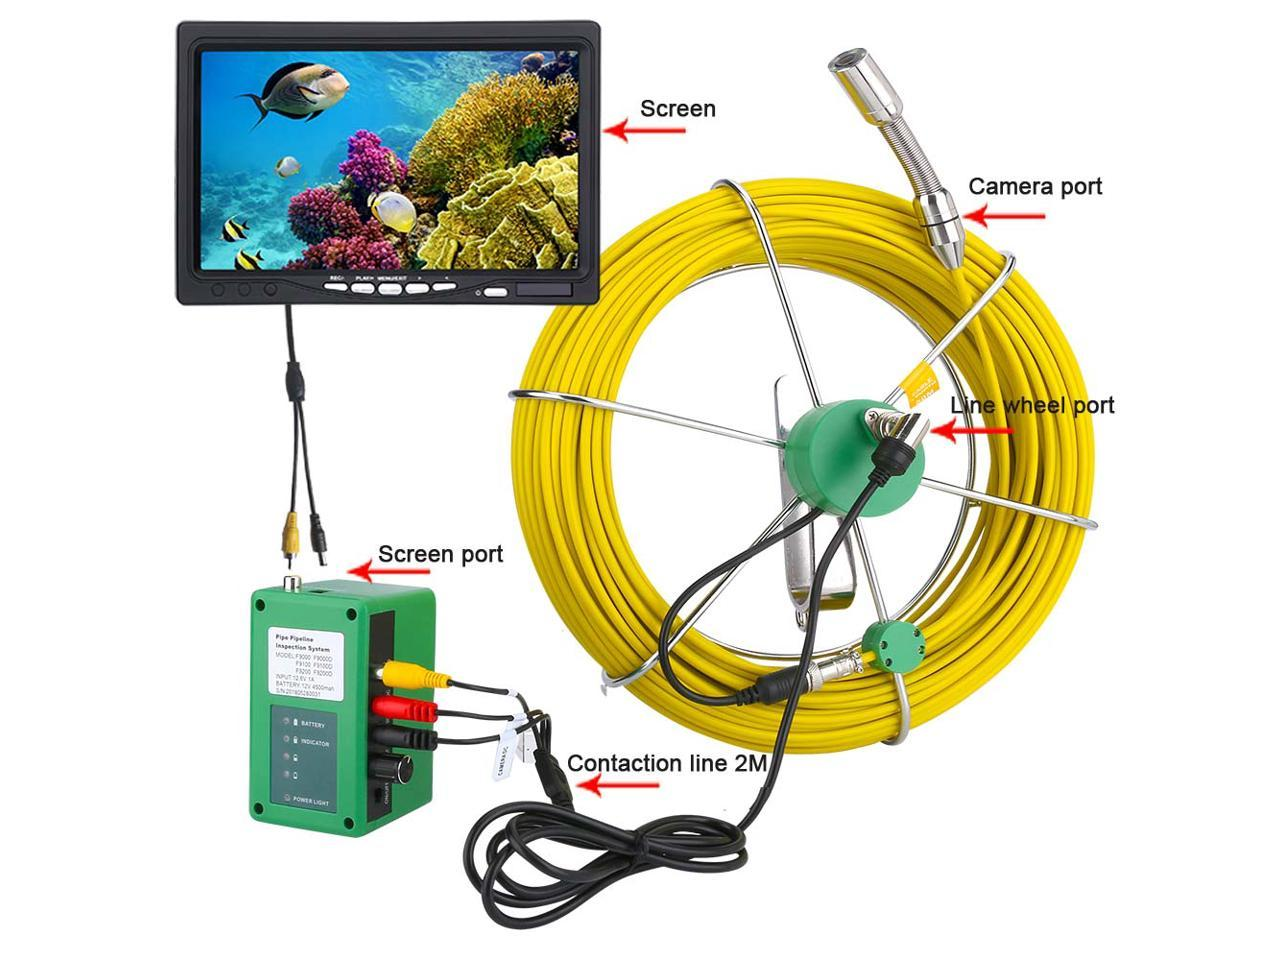 23mm Pipe Sewer Inspection Camera Waterproof Drain Pipeline Replacement Camera